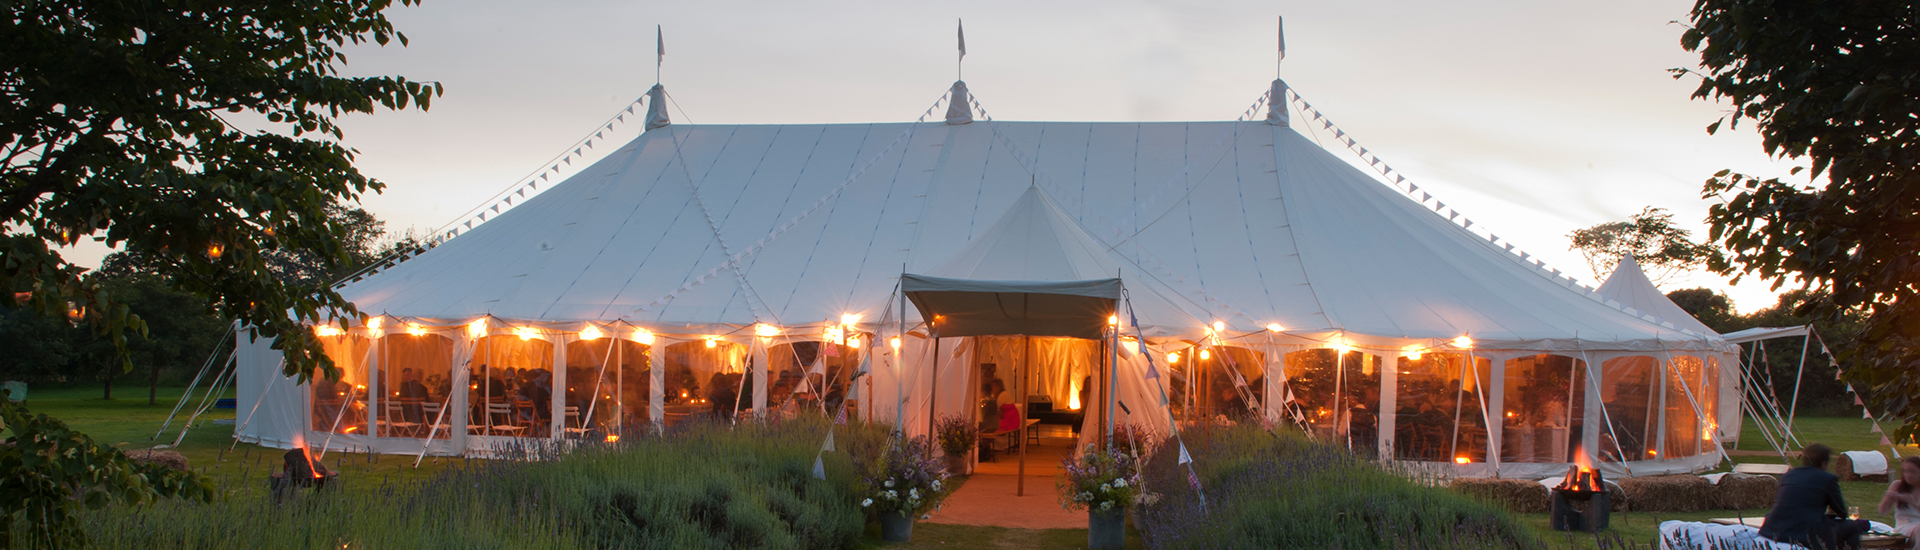 Wigwam Marquees traditional canvas wedding marquee hire Surrey Round and Round Ended luxury marquees 1